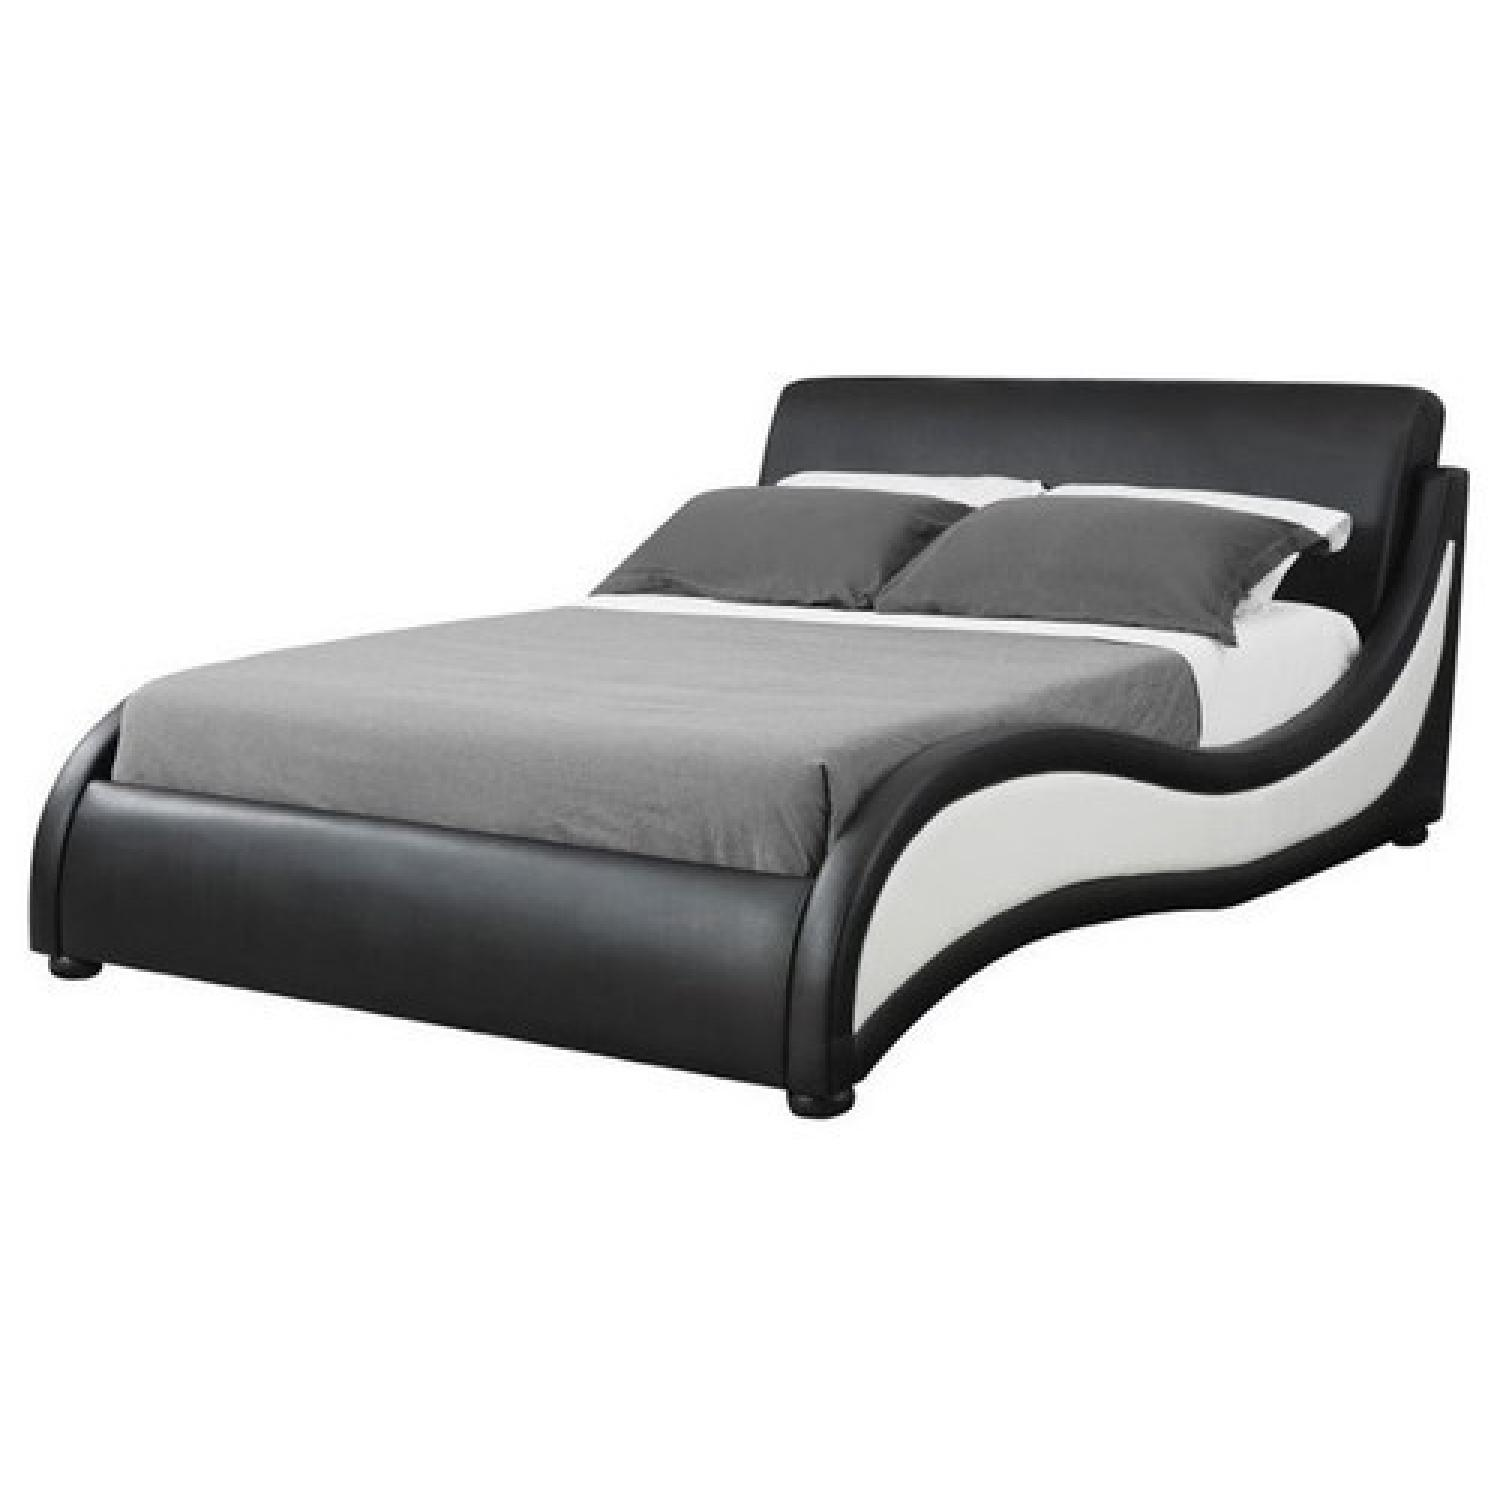 Modern 2-Tone King Size Bed w/ Space Age Design